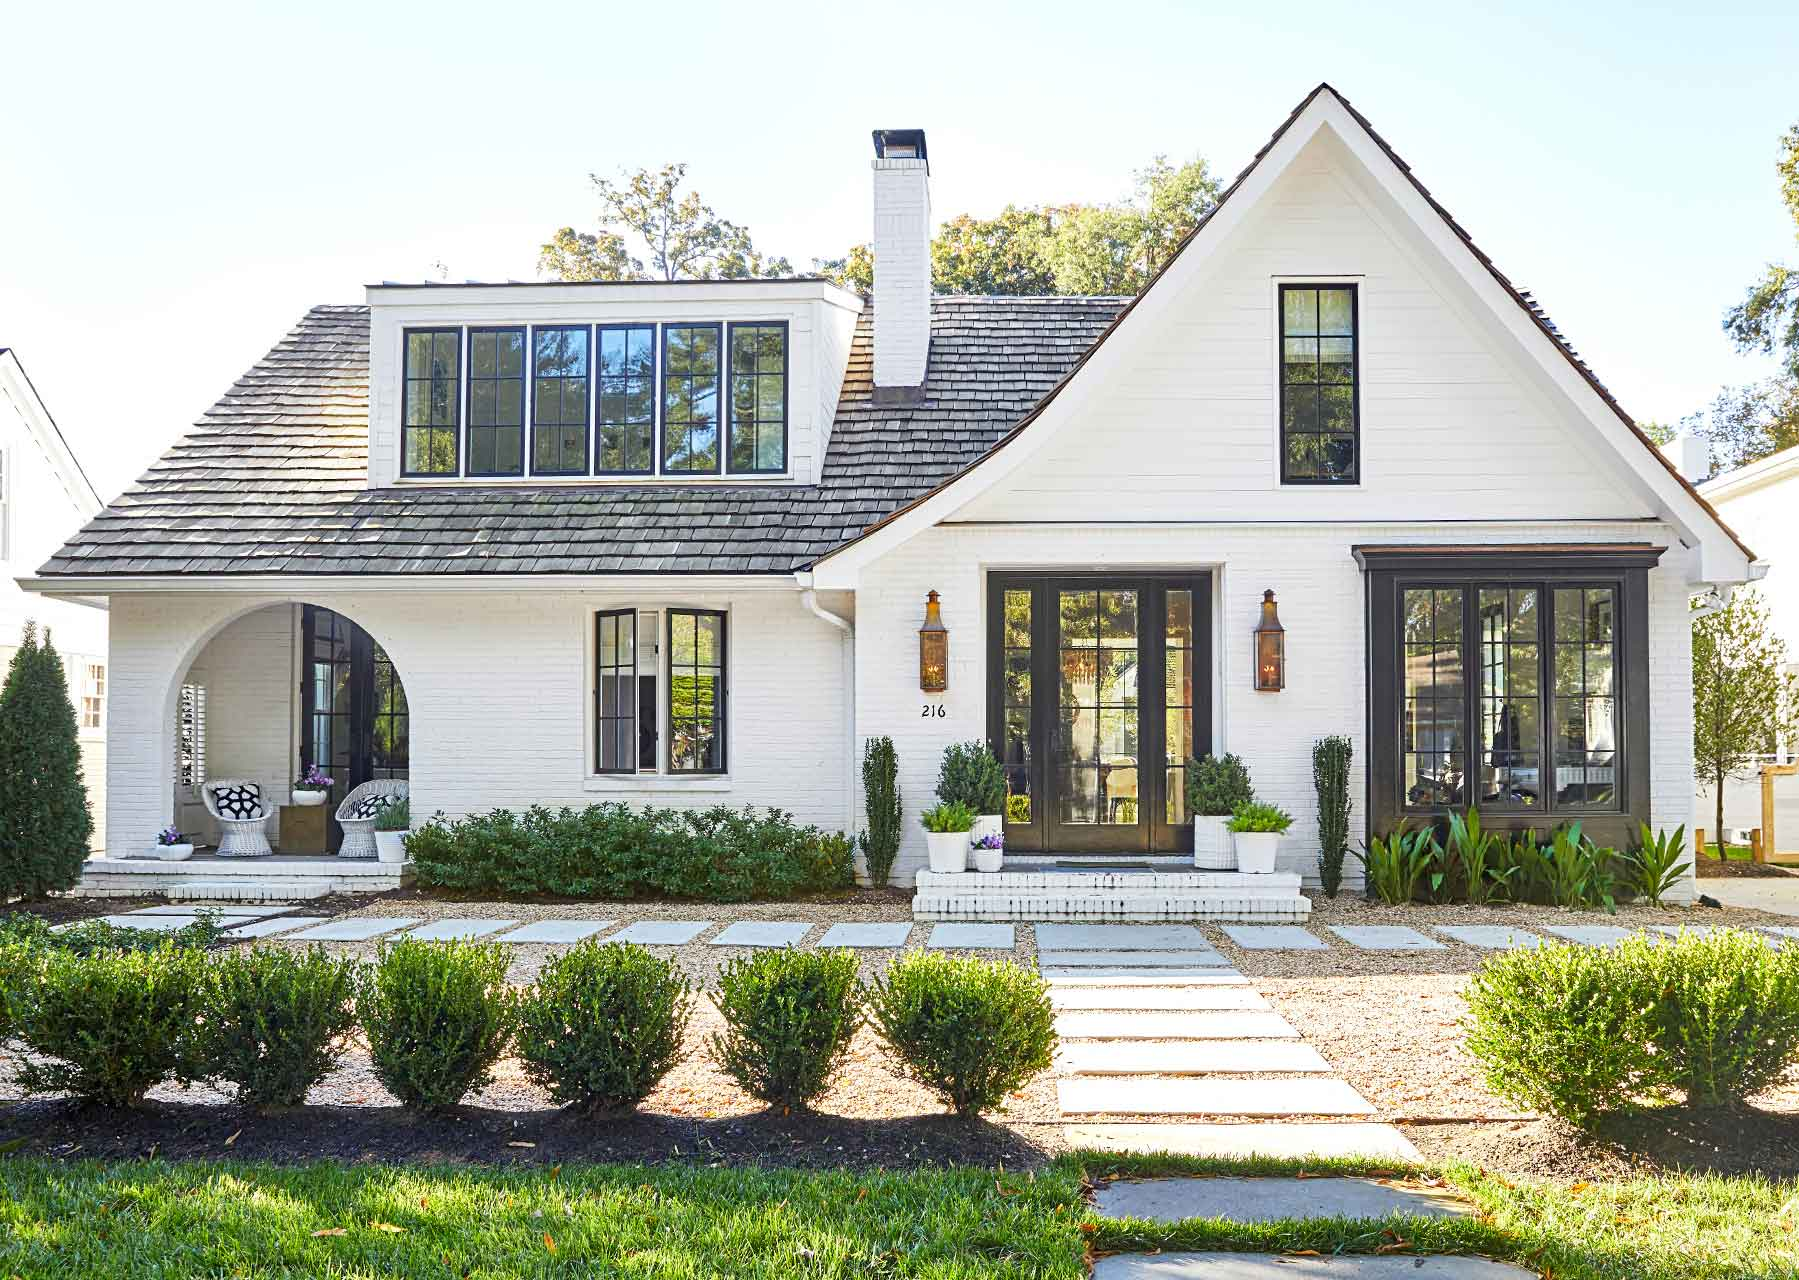 Home style 365 1